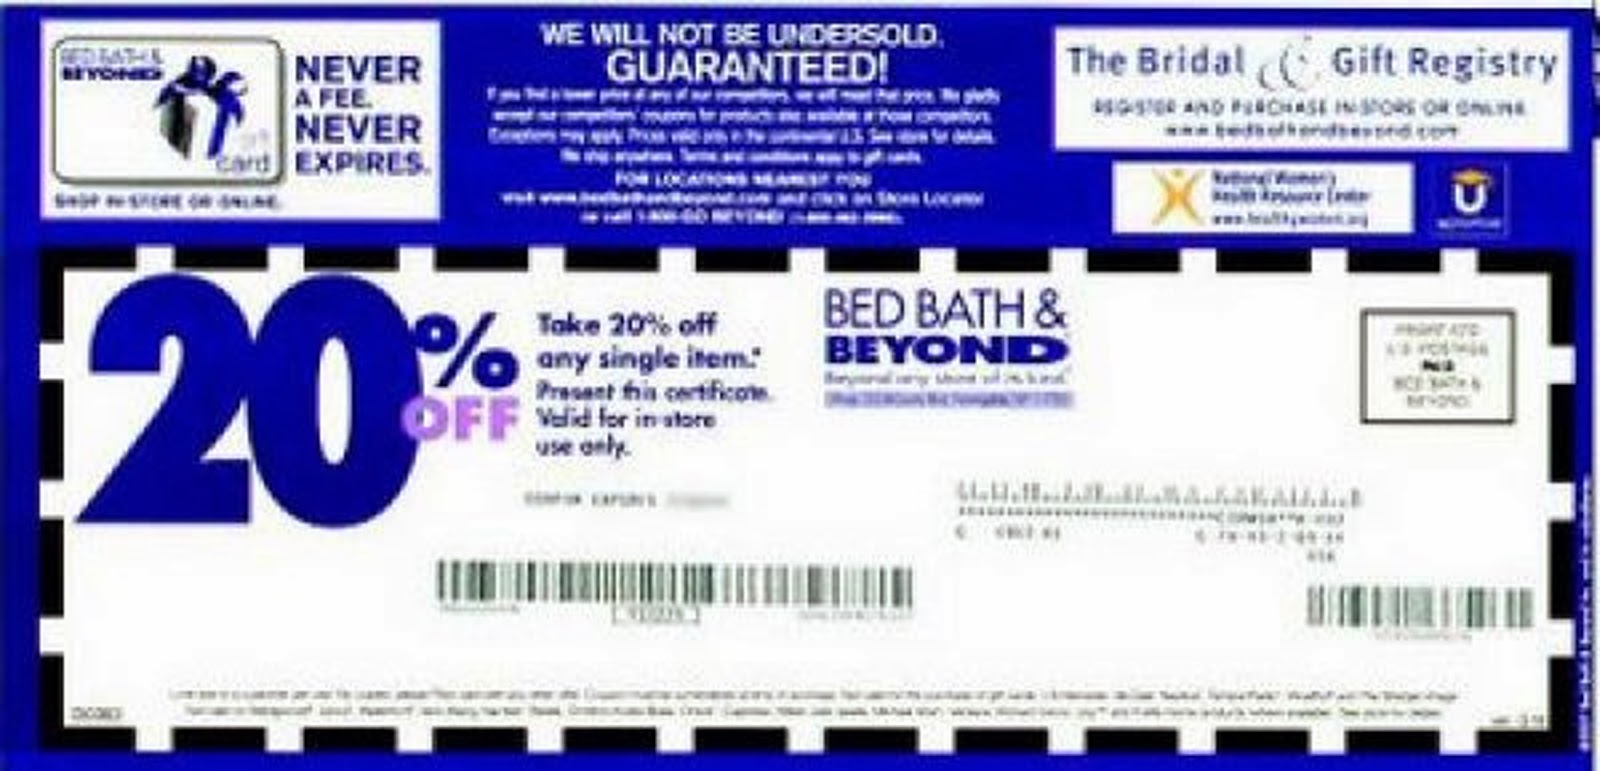 Bed Bath And Beyond Online Coupon Code August 2015 Bangdodo